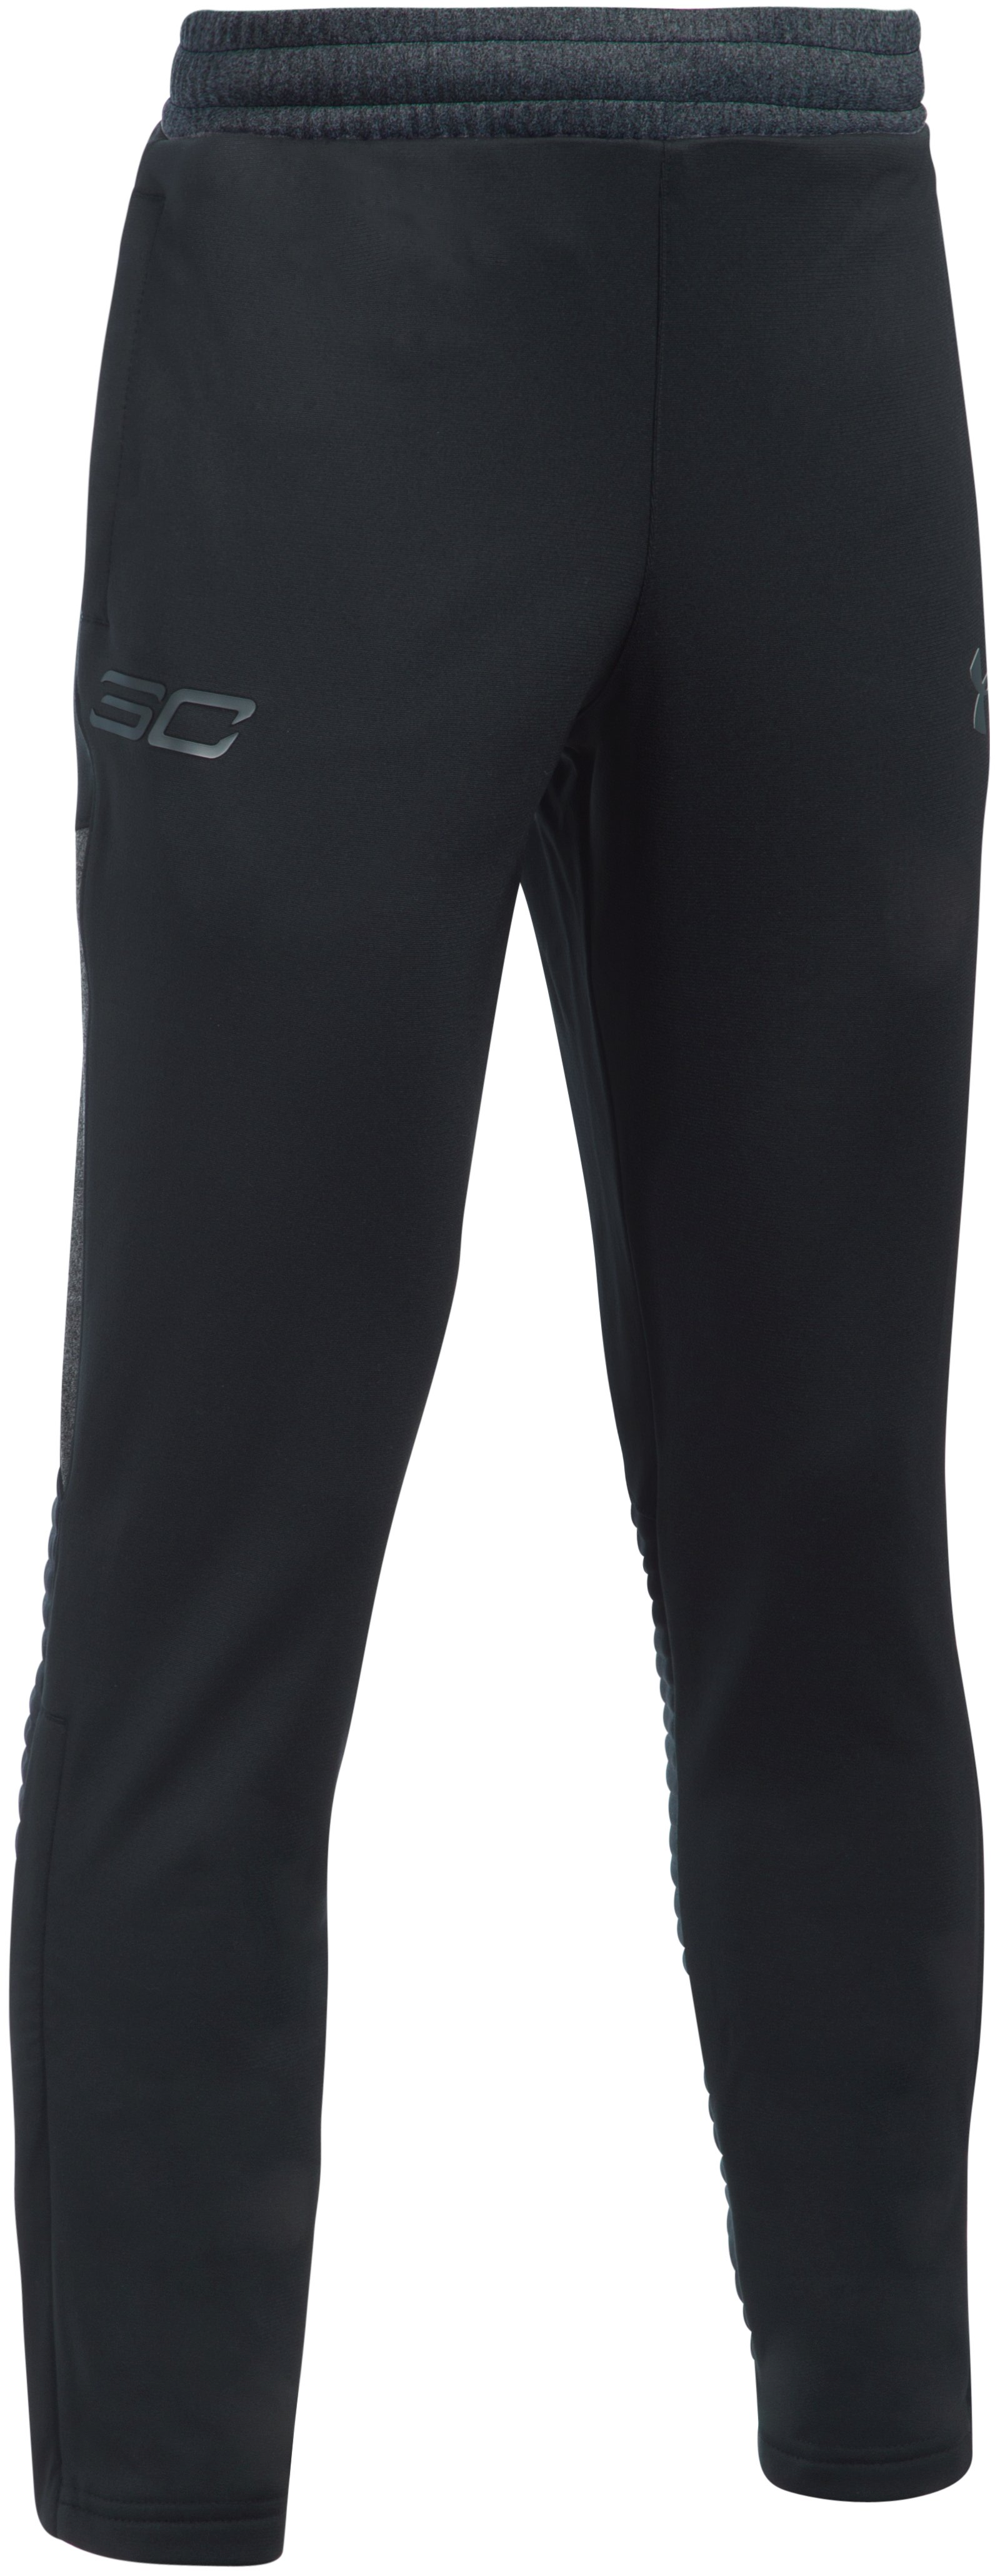 Boys' SC30 Performance Pants, Black , zoomed image